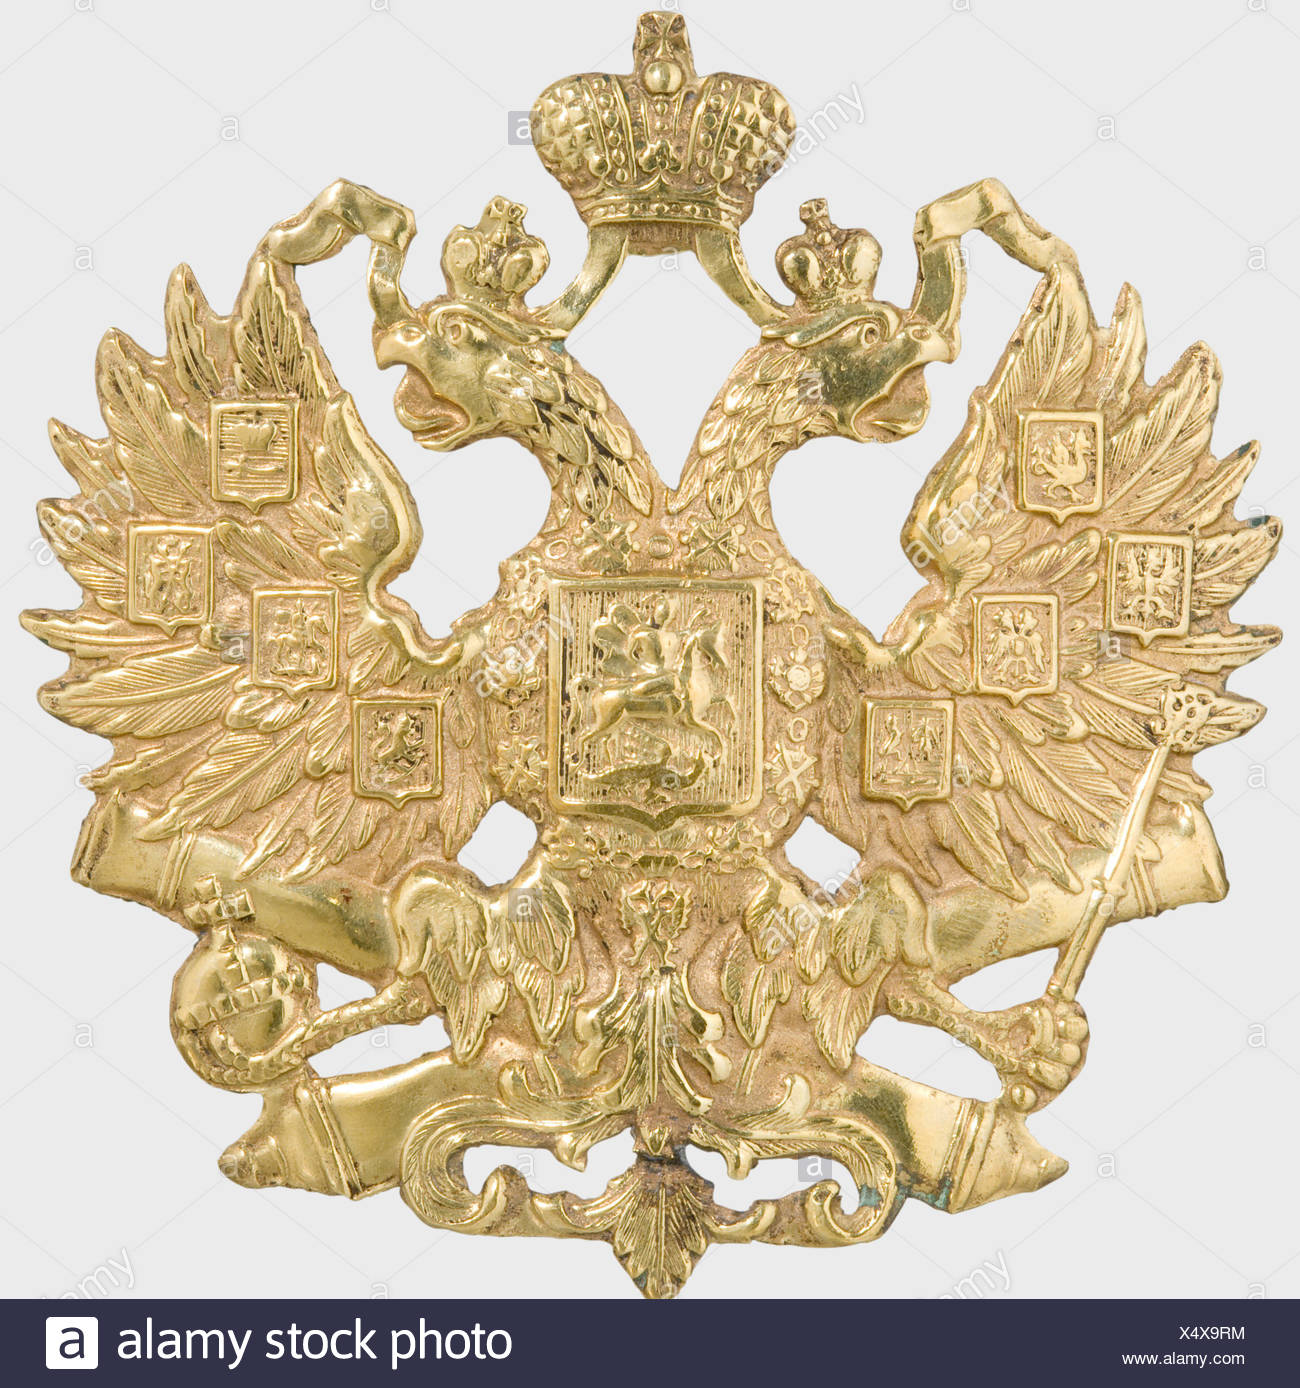 A helmet emblem, of the Imperial Russian Army Sheet brass with the gilding mostly preserved. The loops on the back were repositioned during the period it was worn. historic, historical, 19th century, fine arts, art, art object, art objects, artful, precious, collectible, collector's item, collectibles, collector's items, rarity, rarities, Additional-Rights-Clearances-NA - Stock Image